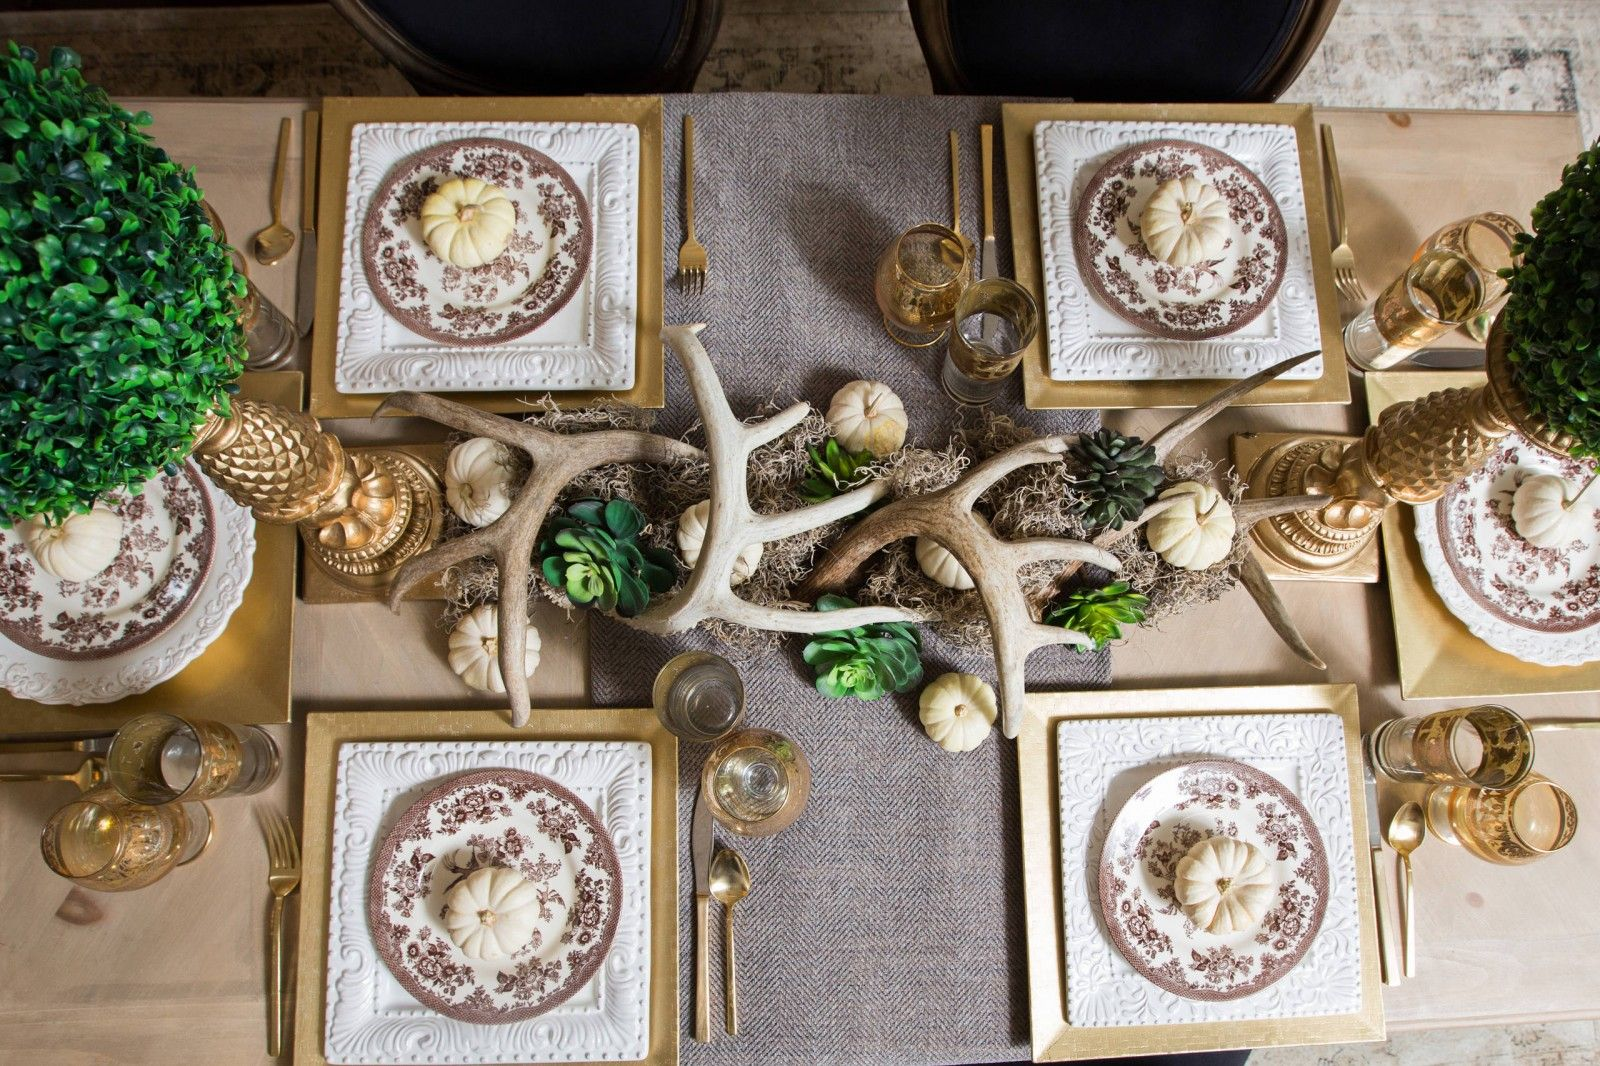 Antlers, greenery and napkins as the table decoration